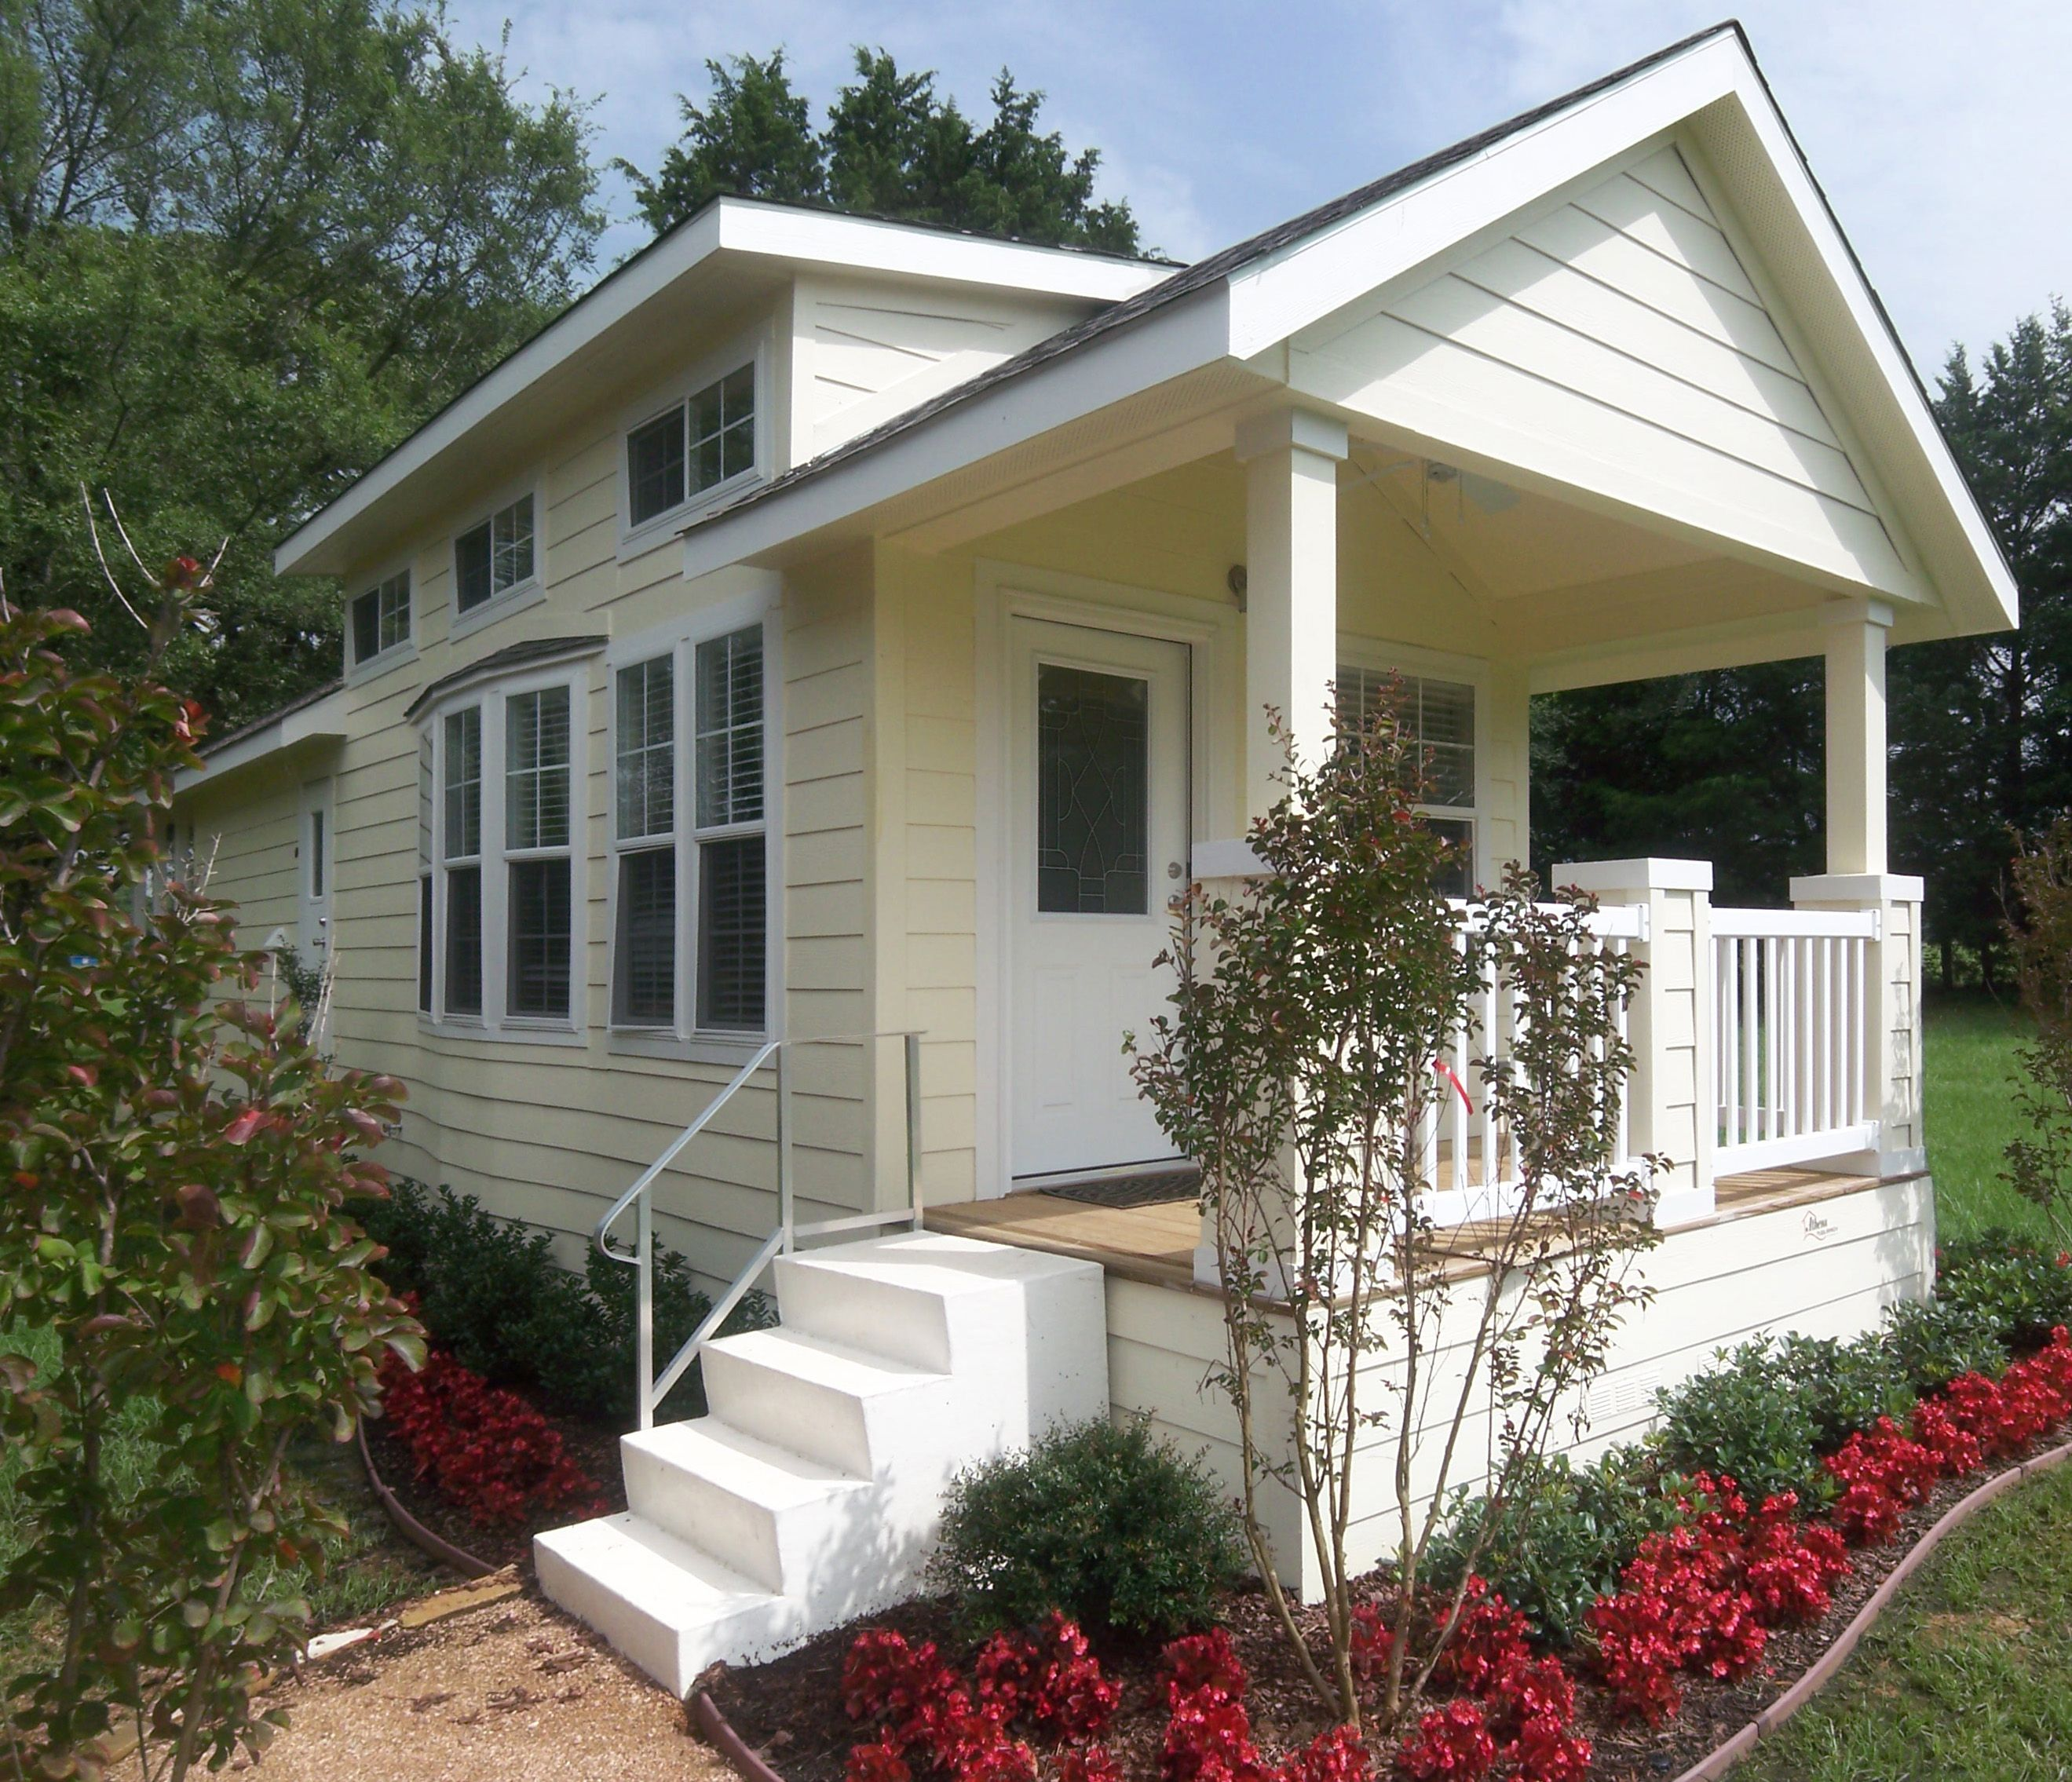 These Are Some Neat Tiny Homes That Can Be Purchased And Moved To Property